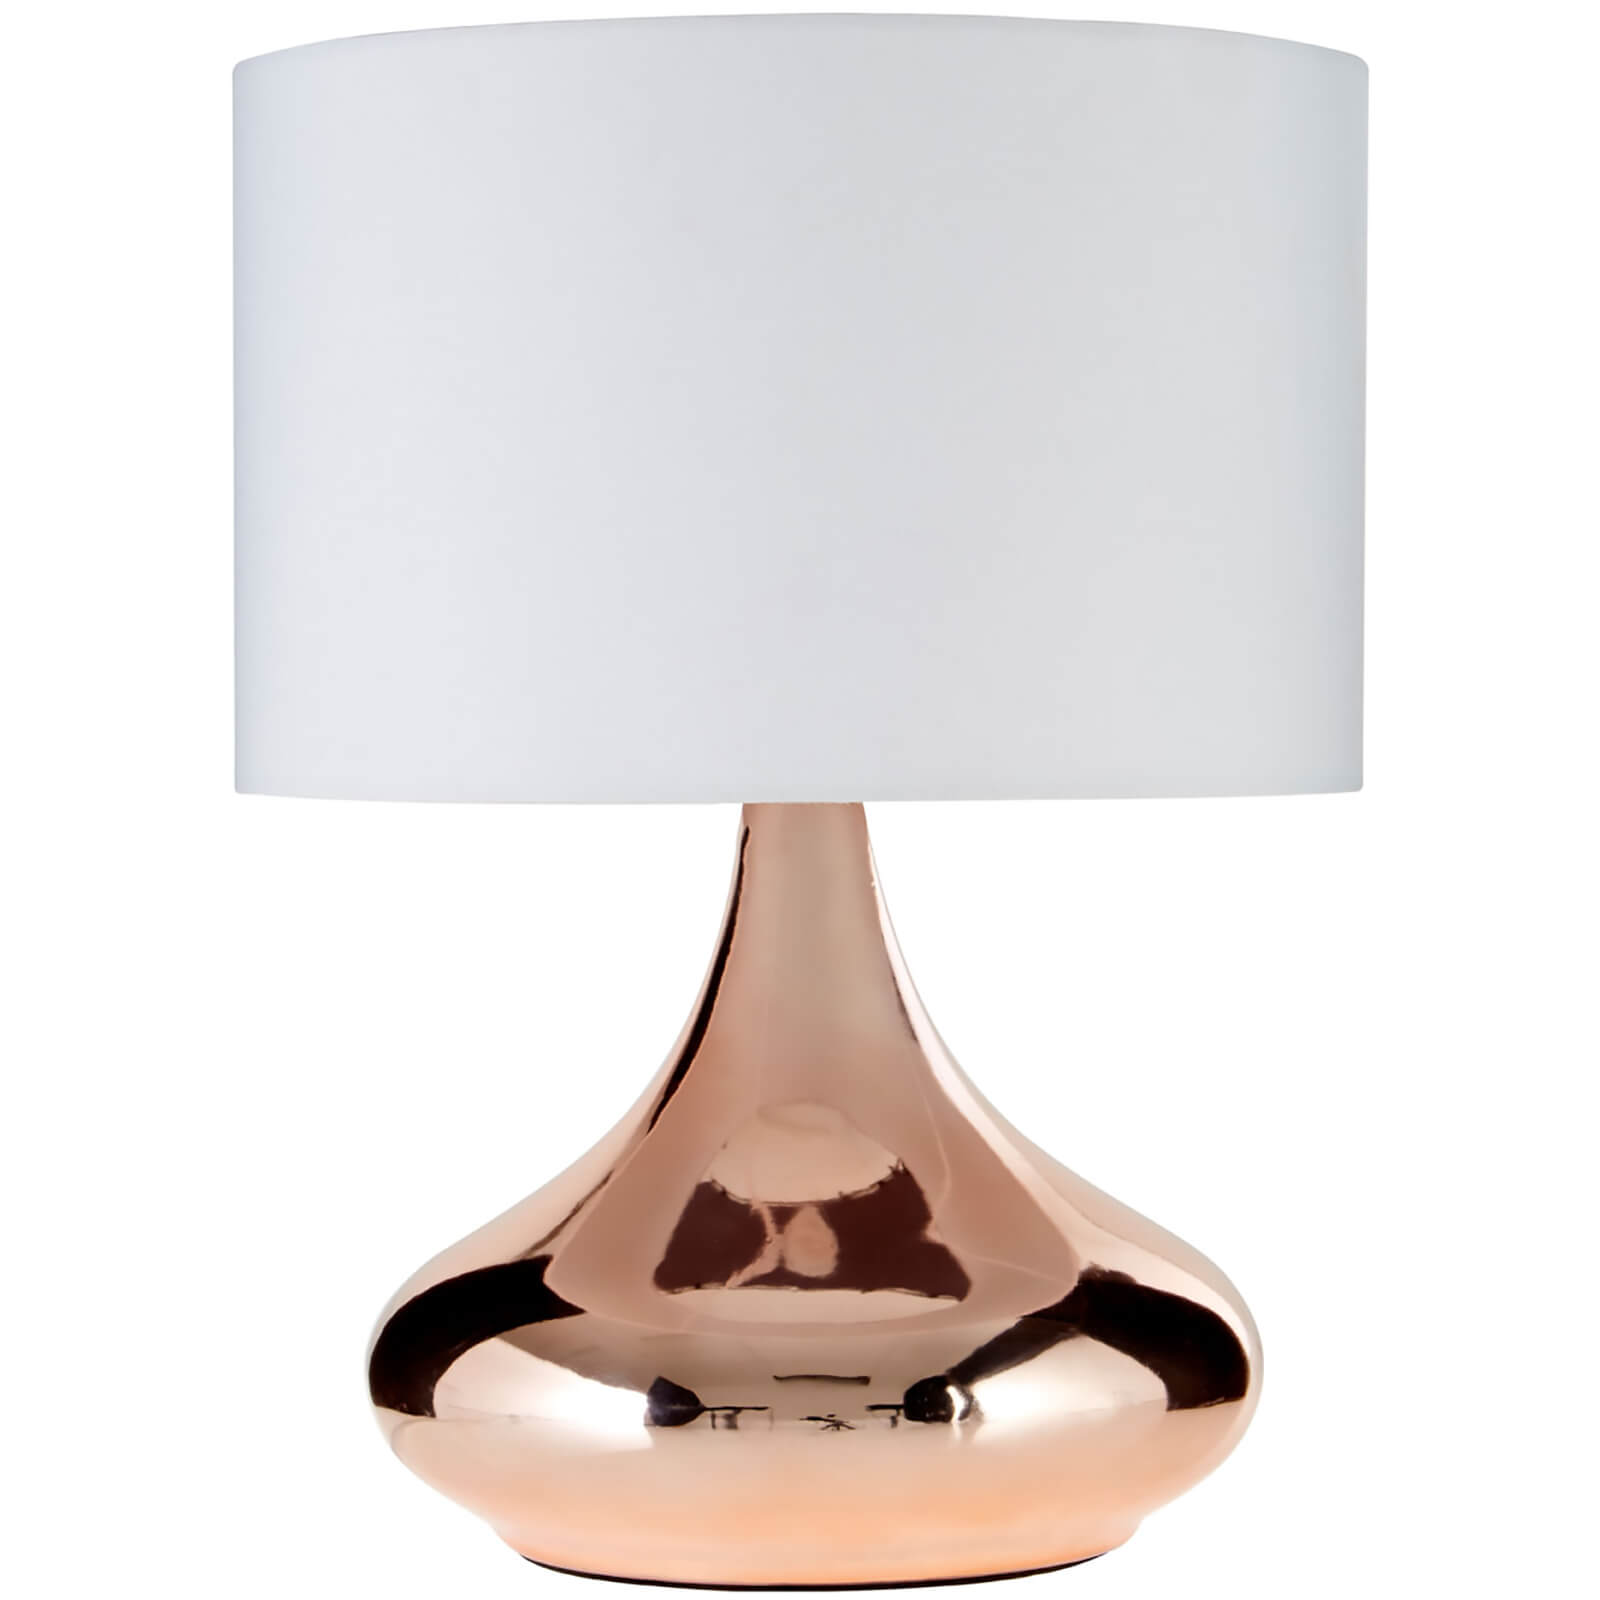 Fifty Five South Jaden Table Lamp - Copper/Ivory